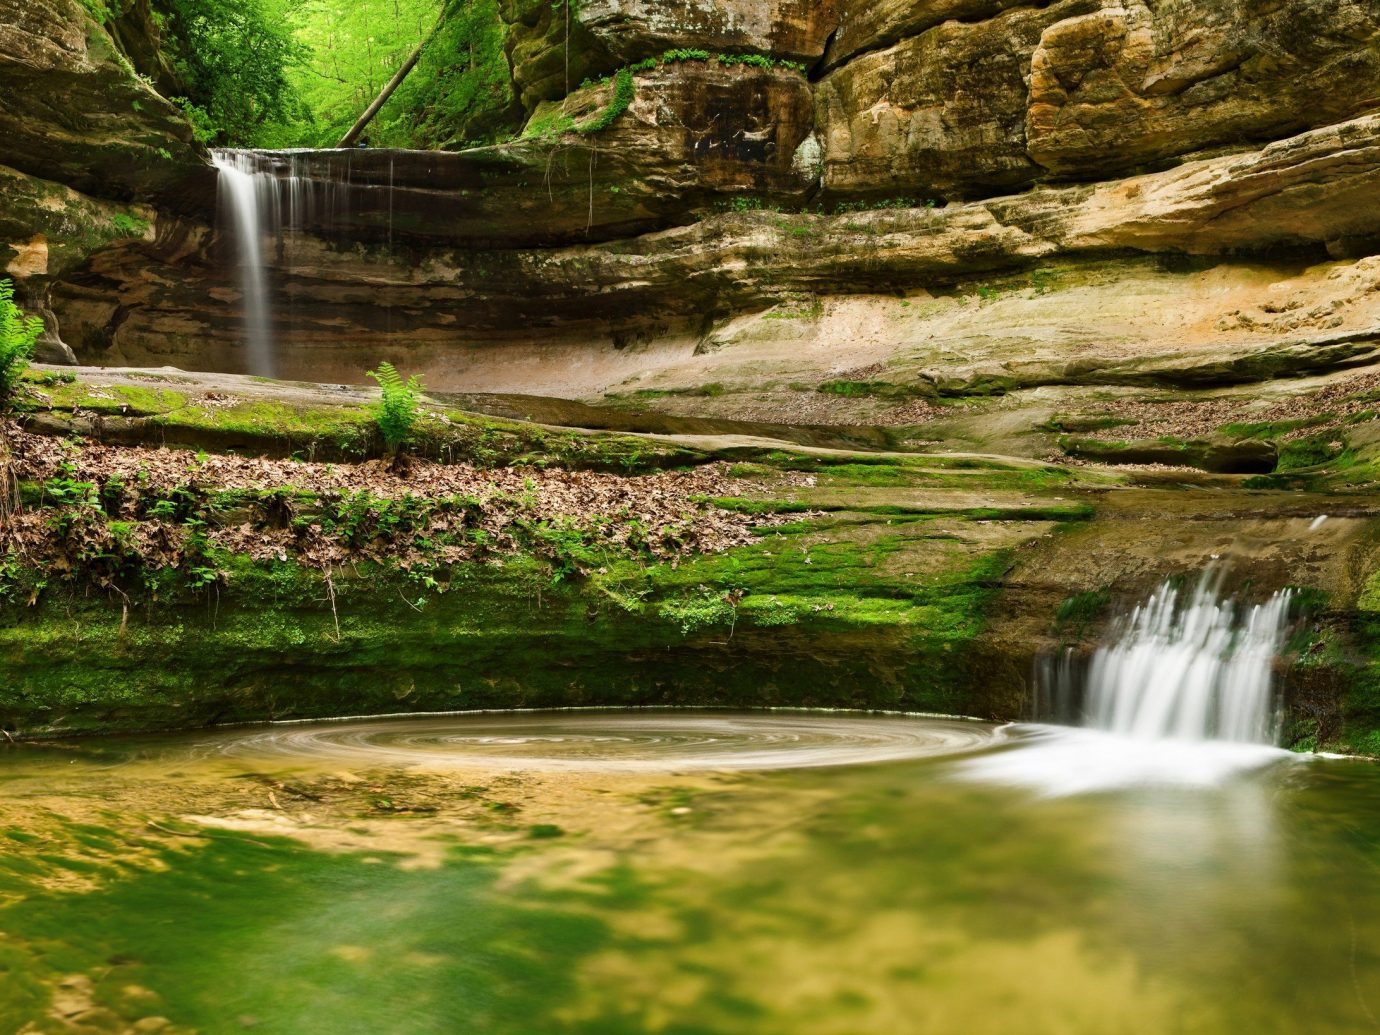 Trip Ideas grass Nature outdoor water Waterfall vegetation body of water green watercourse tree stream water feature rock River valley landscape reflection Jungle flower woodland park rainforest